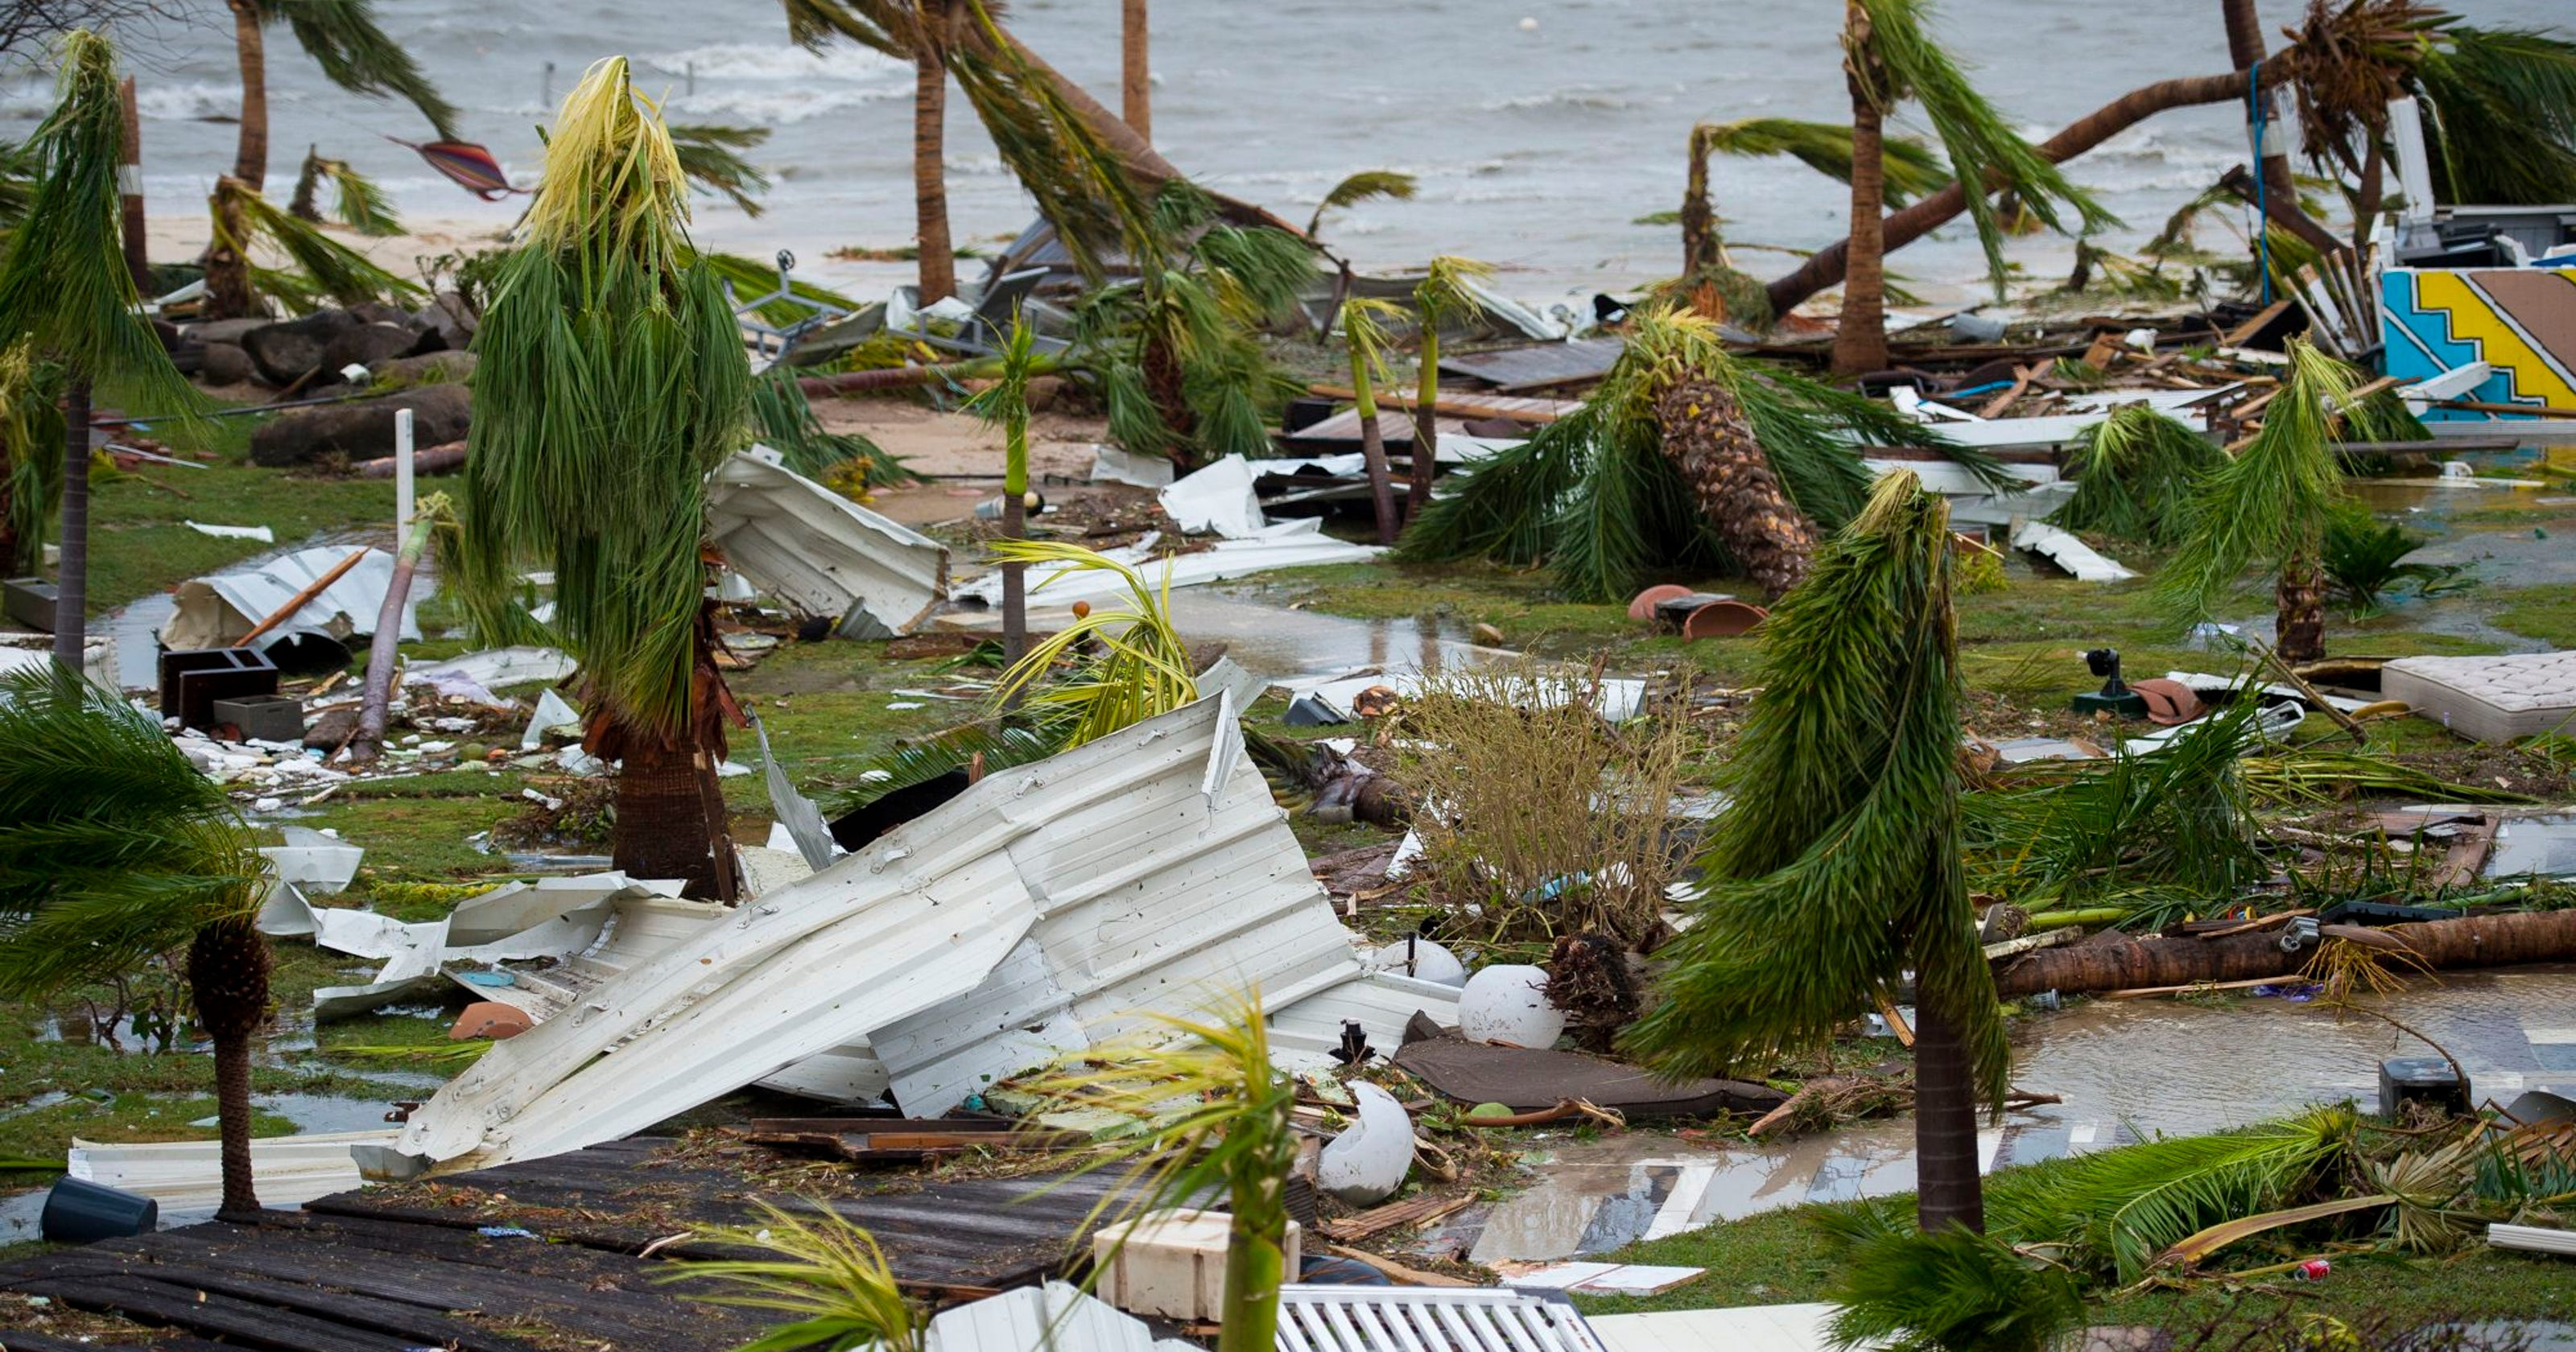 473220858e4 Hurricane Irma likely to join long list of retired 'I' storms